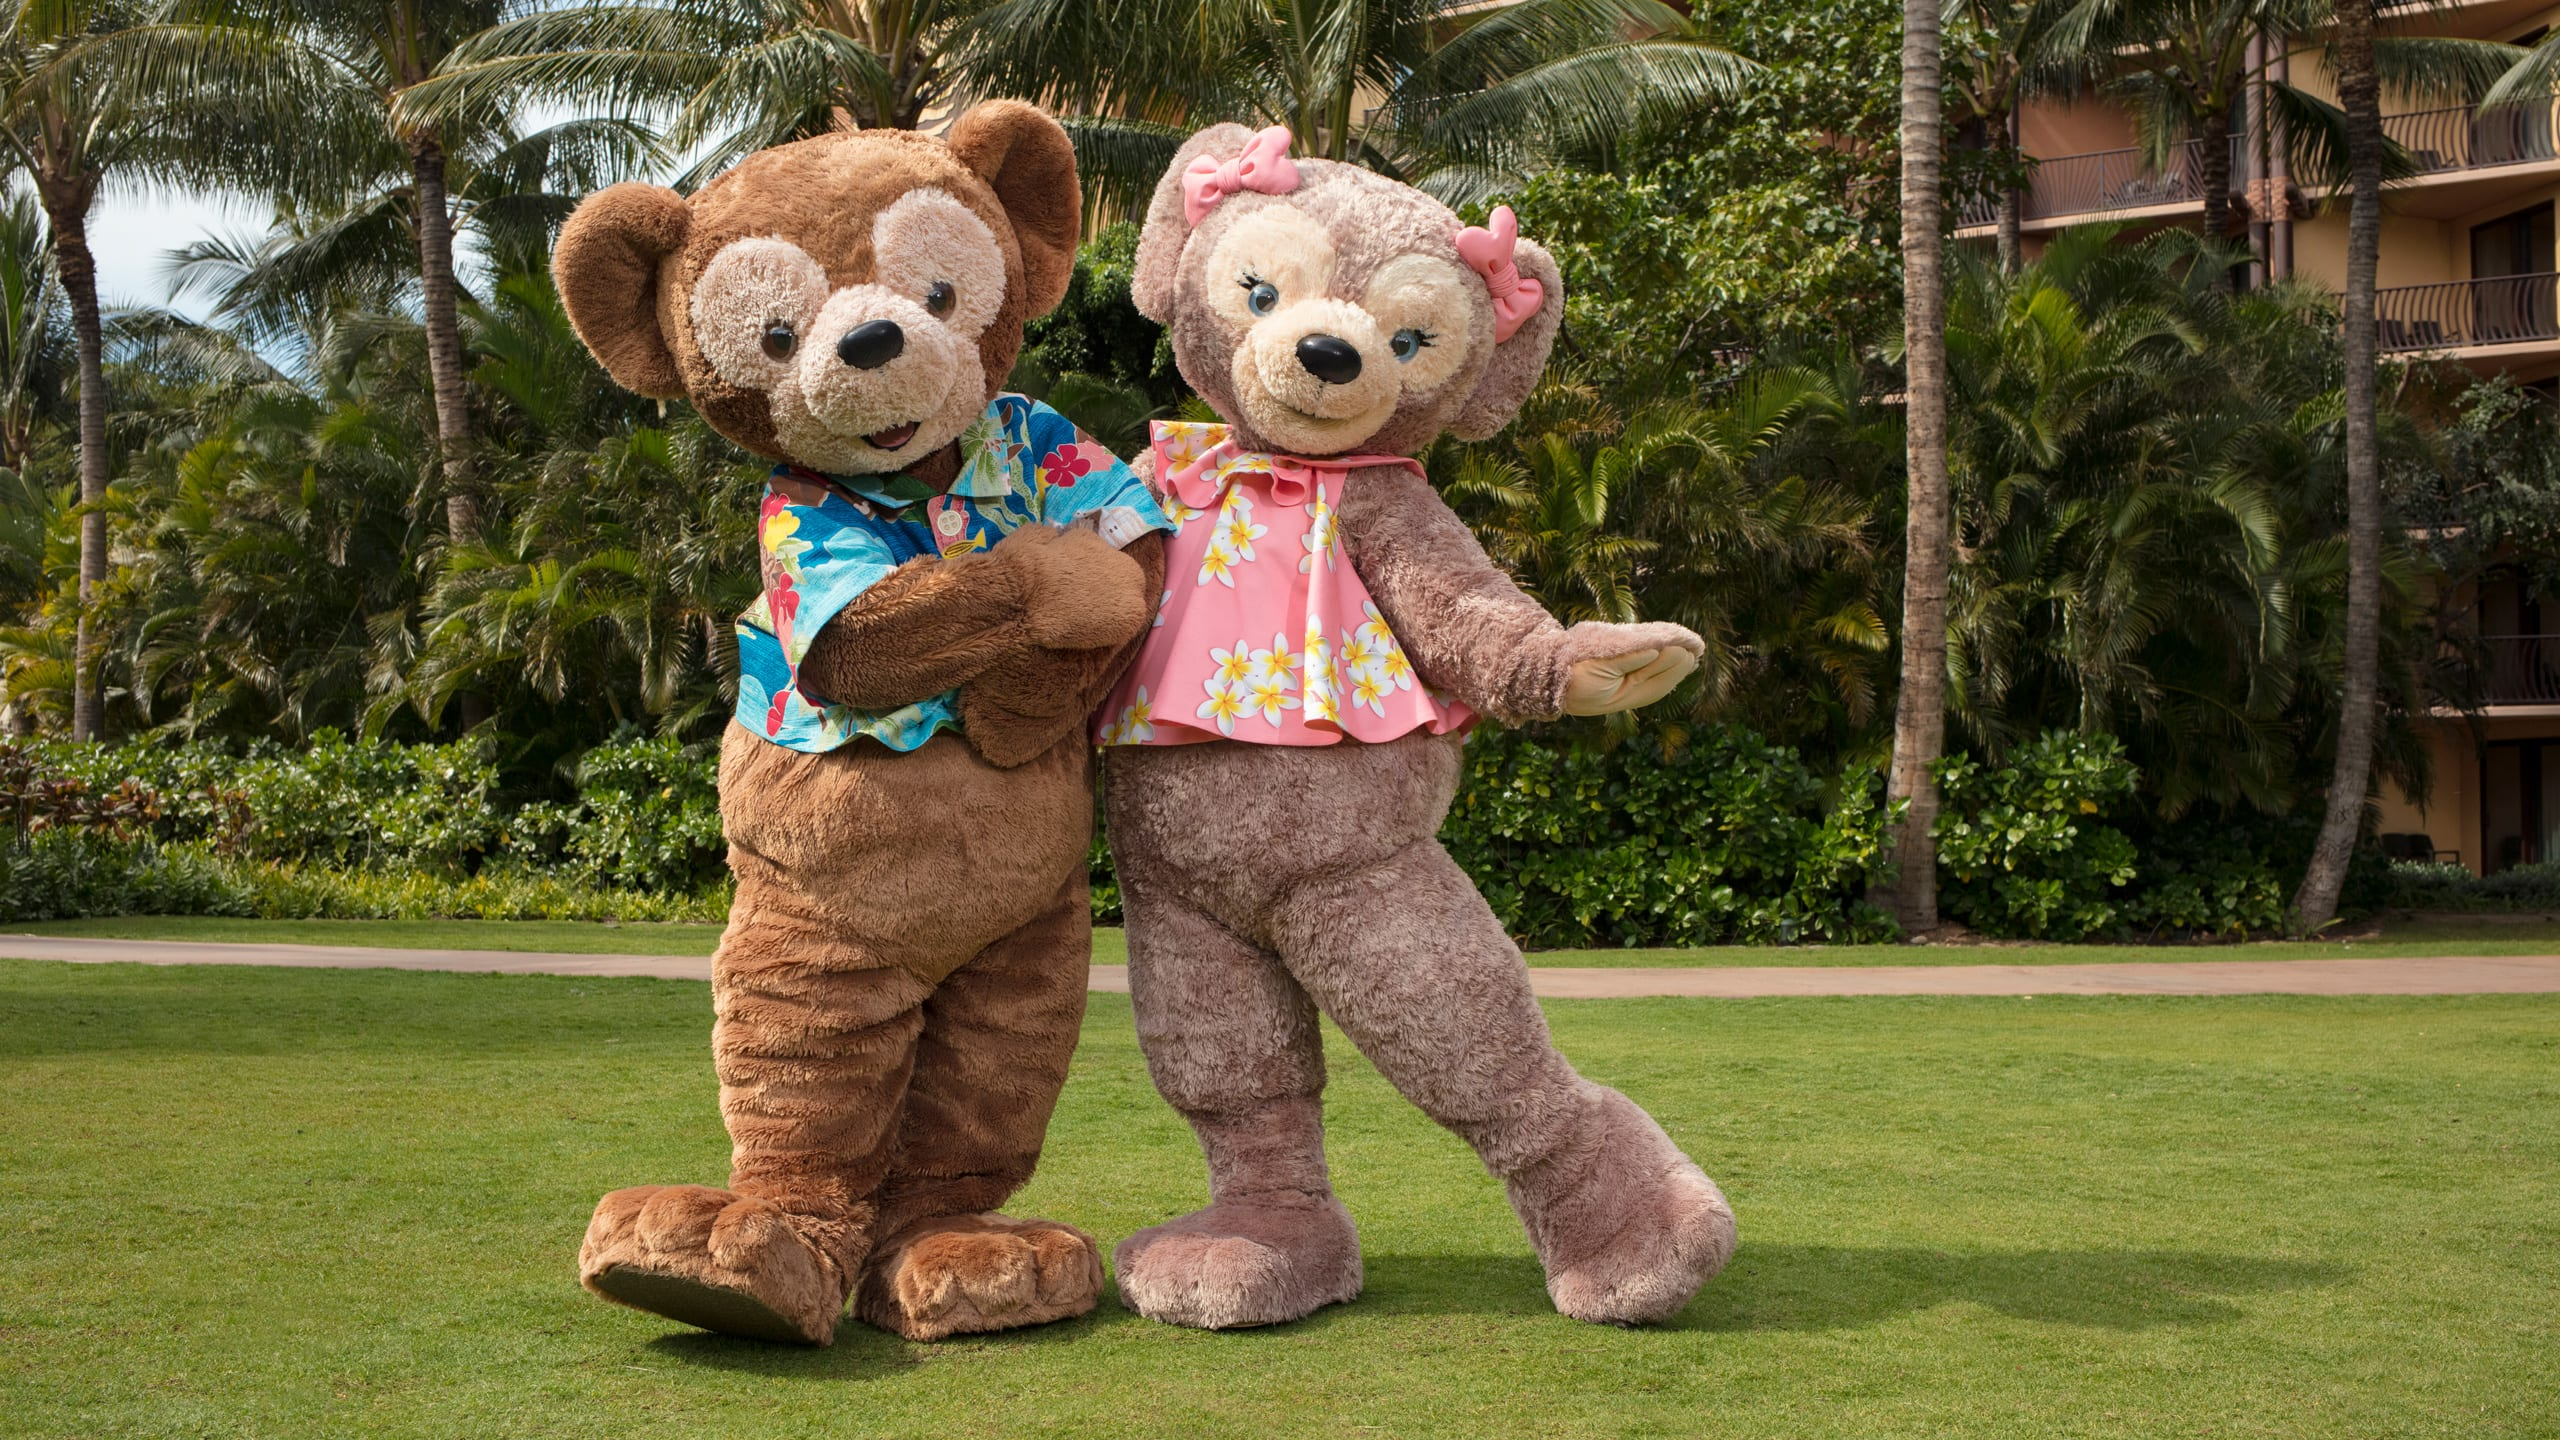 Duffy and Shellie May stand side-by-side on the grass at Aulani Resort